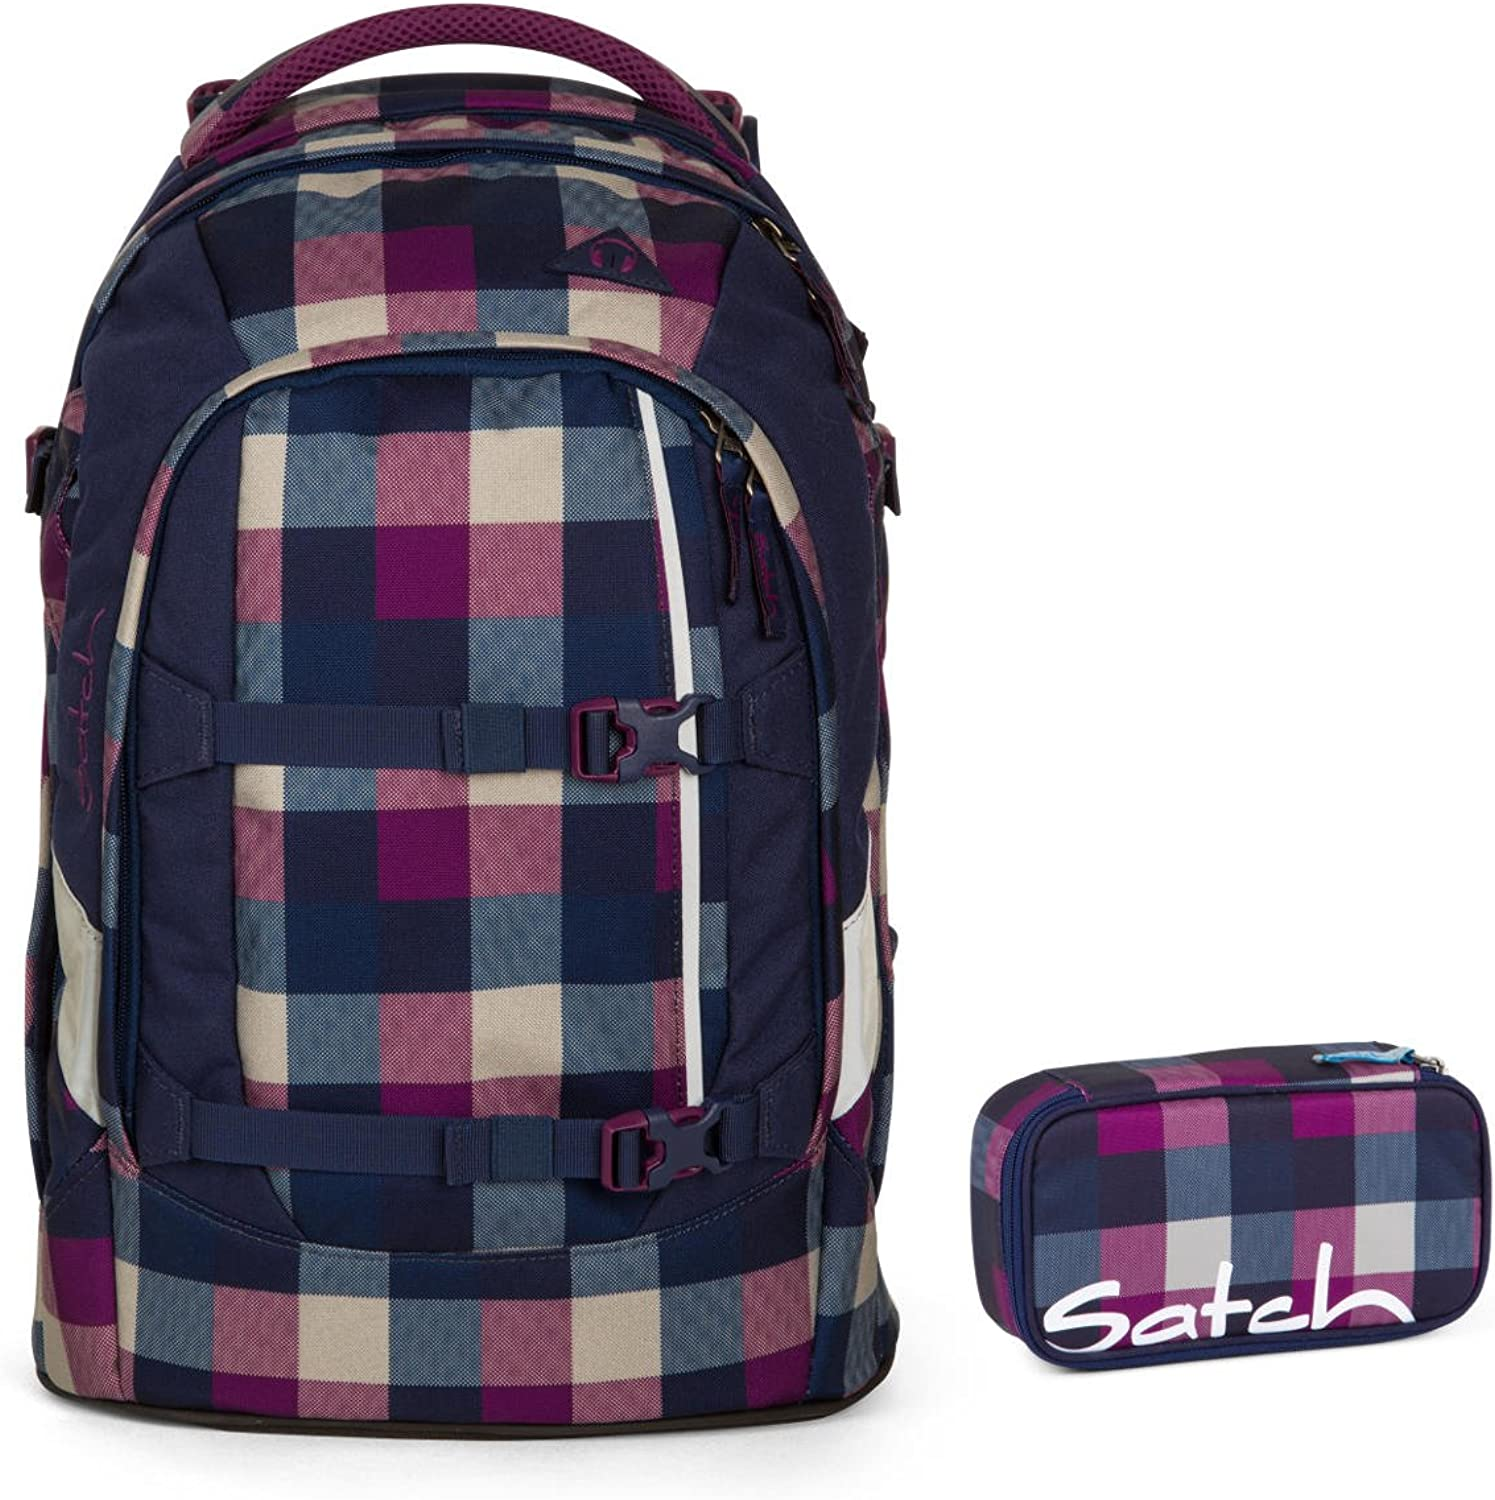 Satch pack by ergobag 2er Set Schulrucksack & Schlamperbox Berry Carry